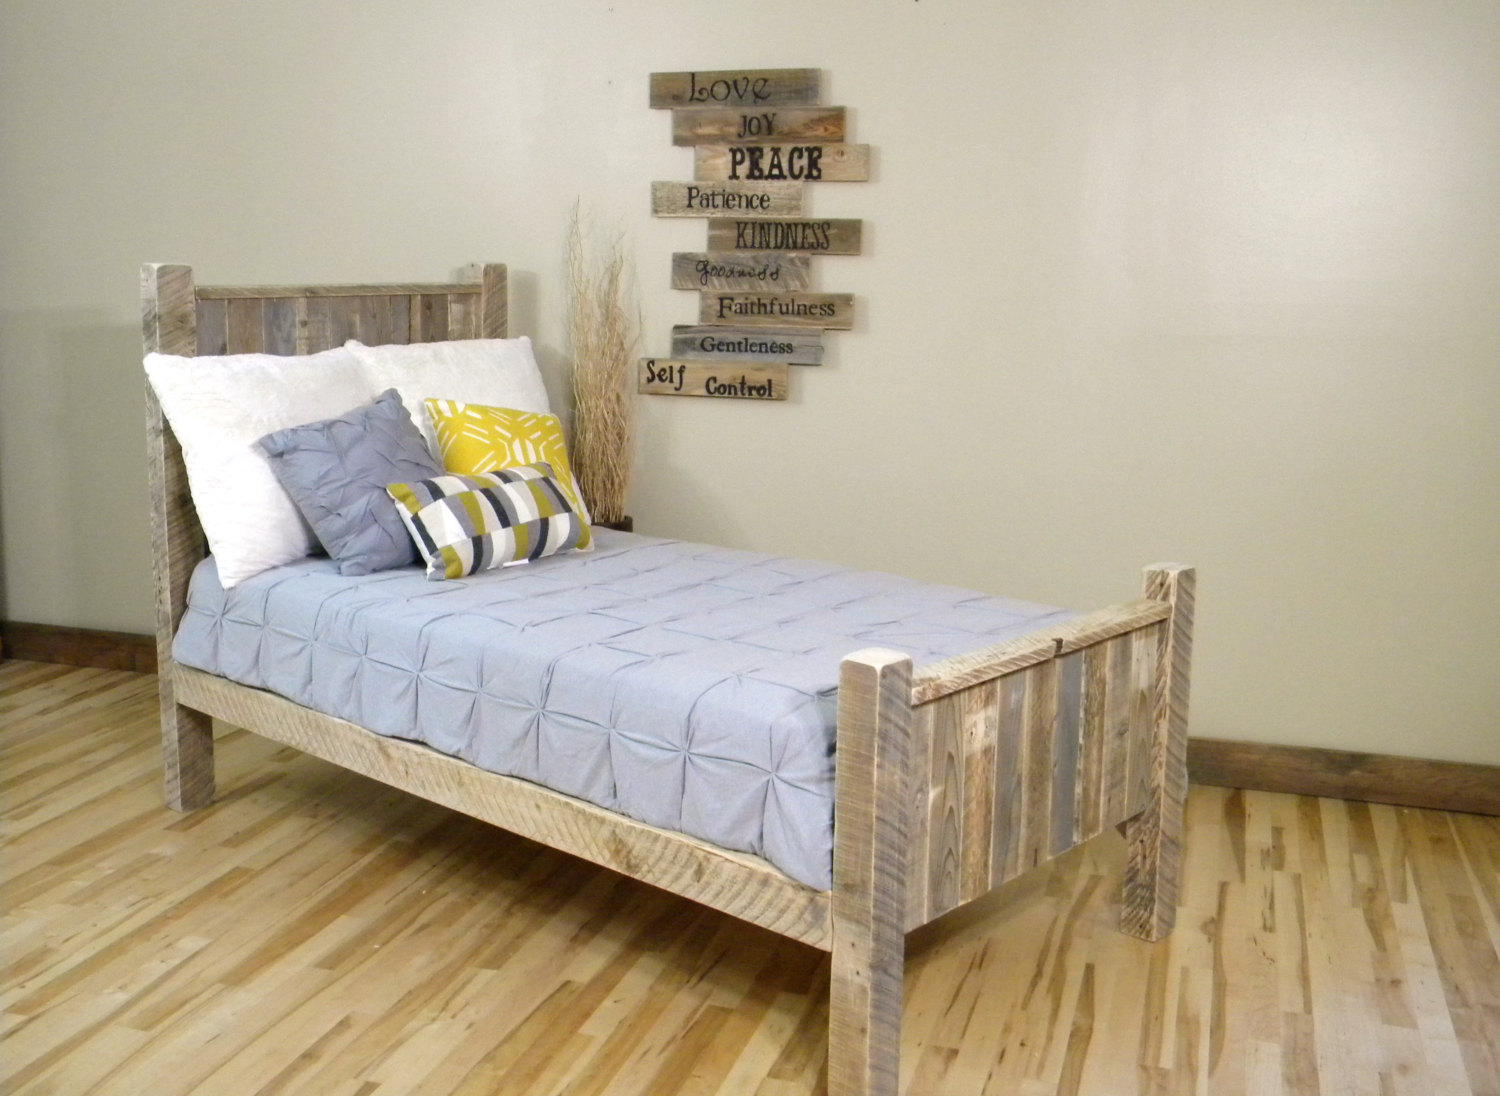 Amazing Diy Pallet Bed Ideas For You - Elly\'s DIY Blog